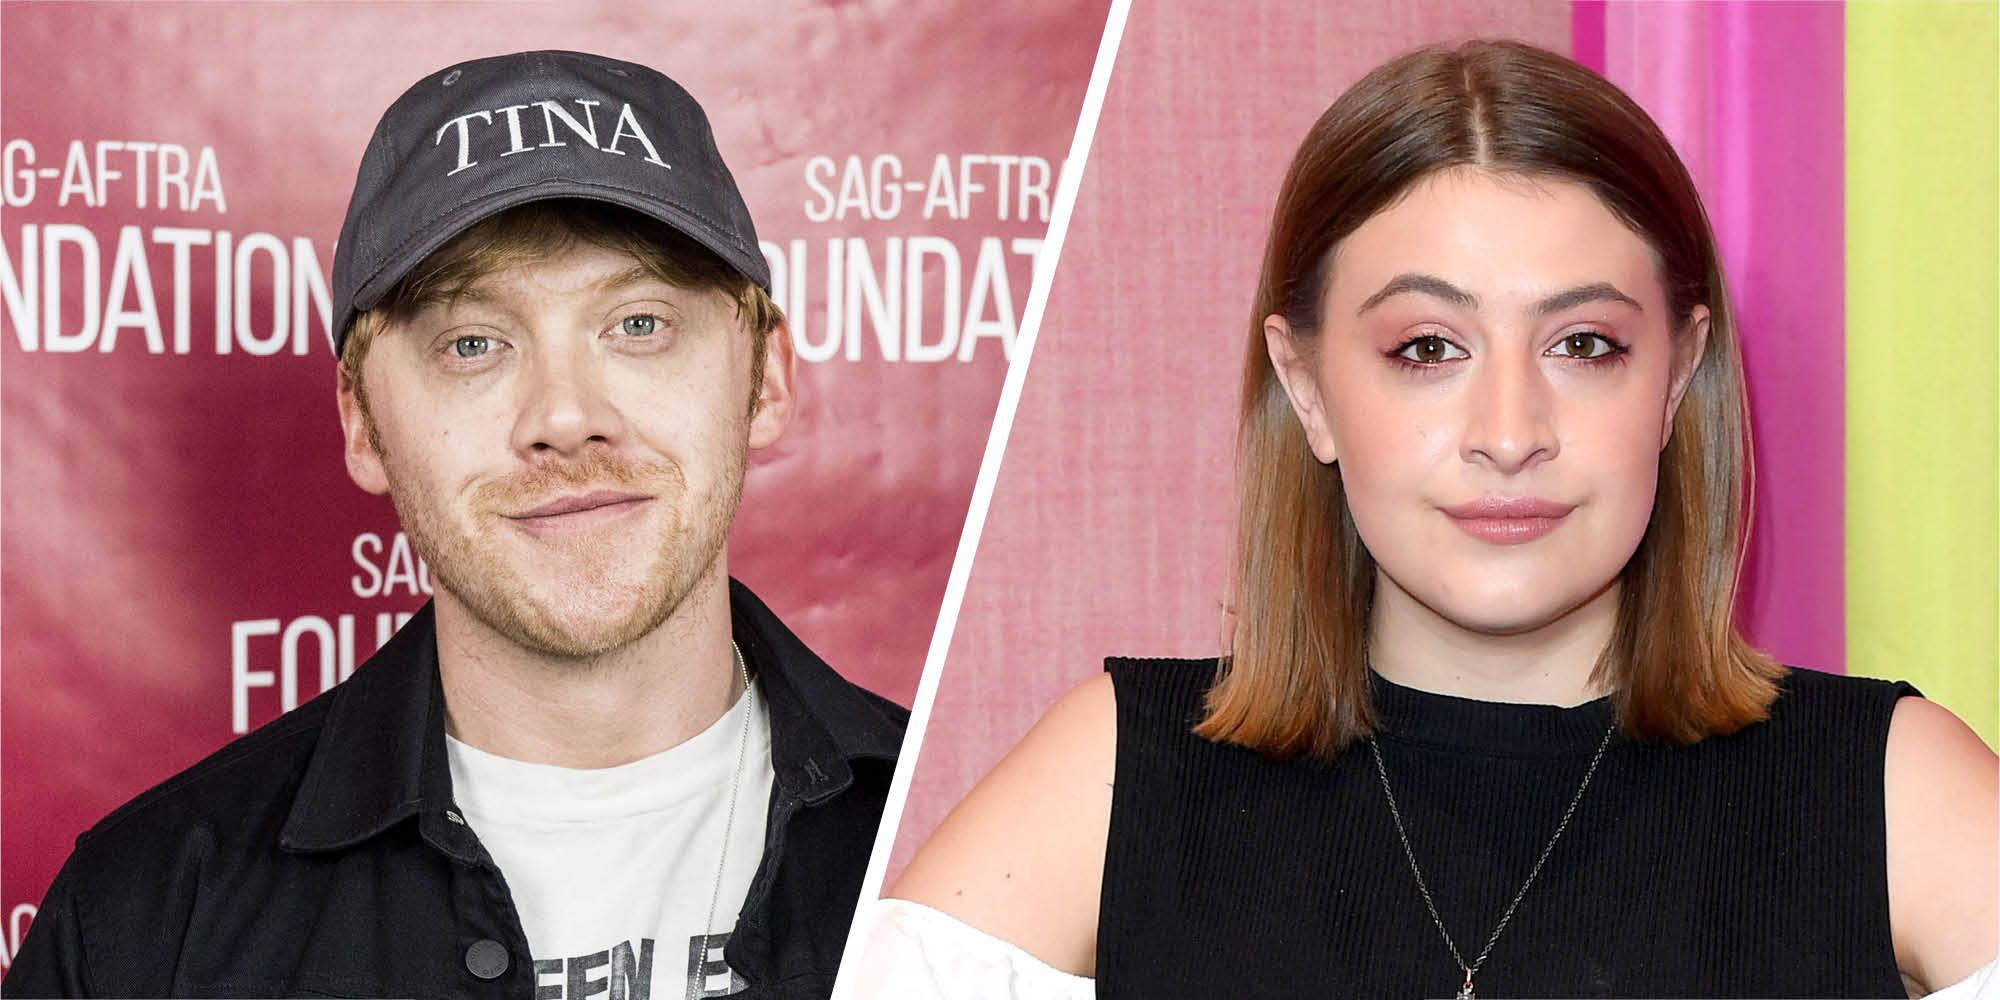 Rupert Grint and Georgia Groome have been dating since 2011 and HOW DID WE NOT KNOW?